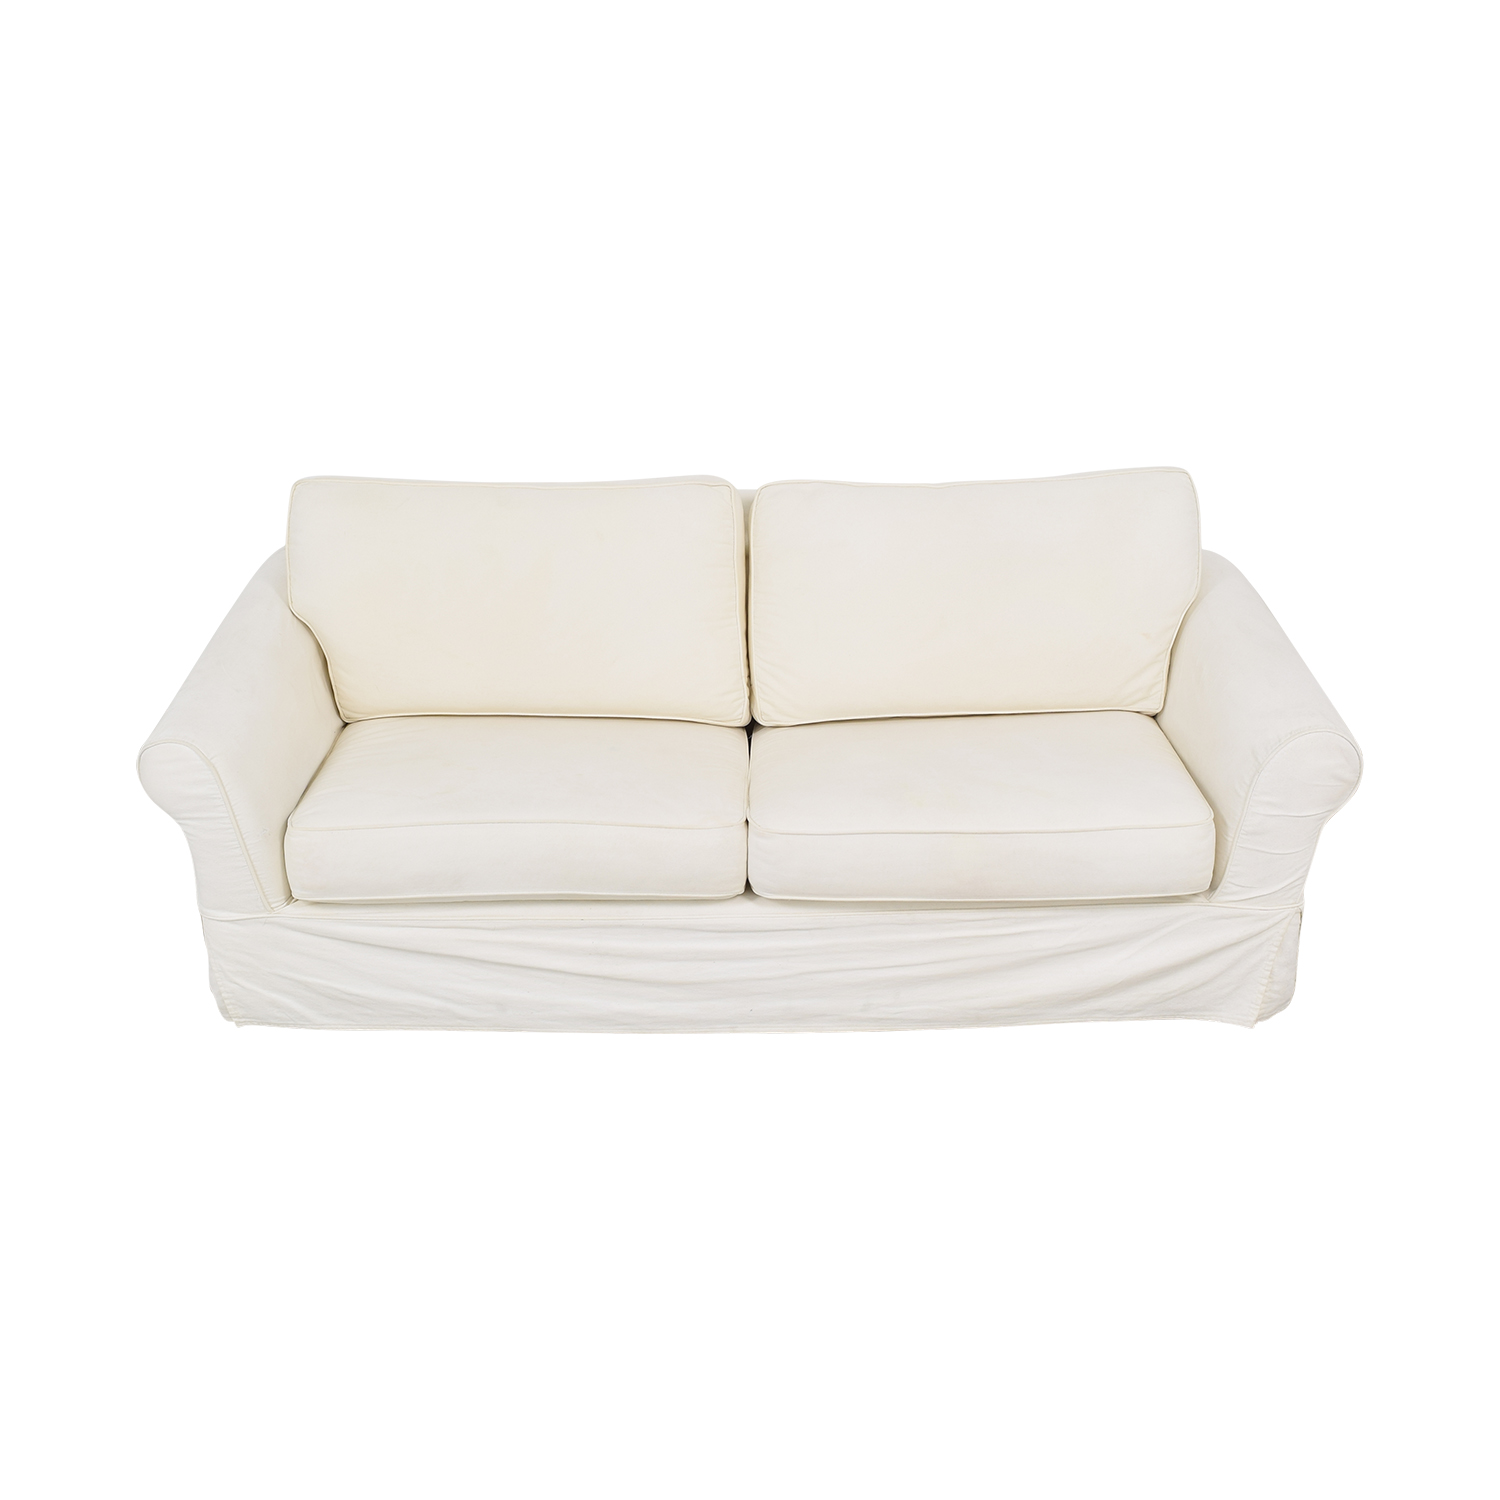 Pottery Barn Comfort Roll Arm Slipcovered Queen Sleeper Sofa / Sofa Beds